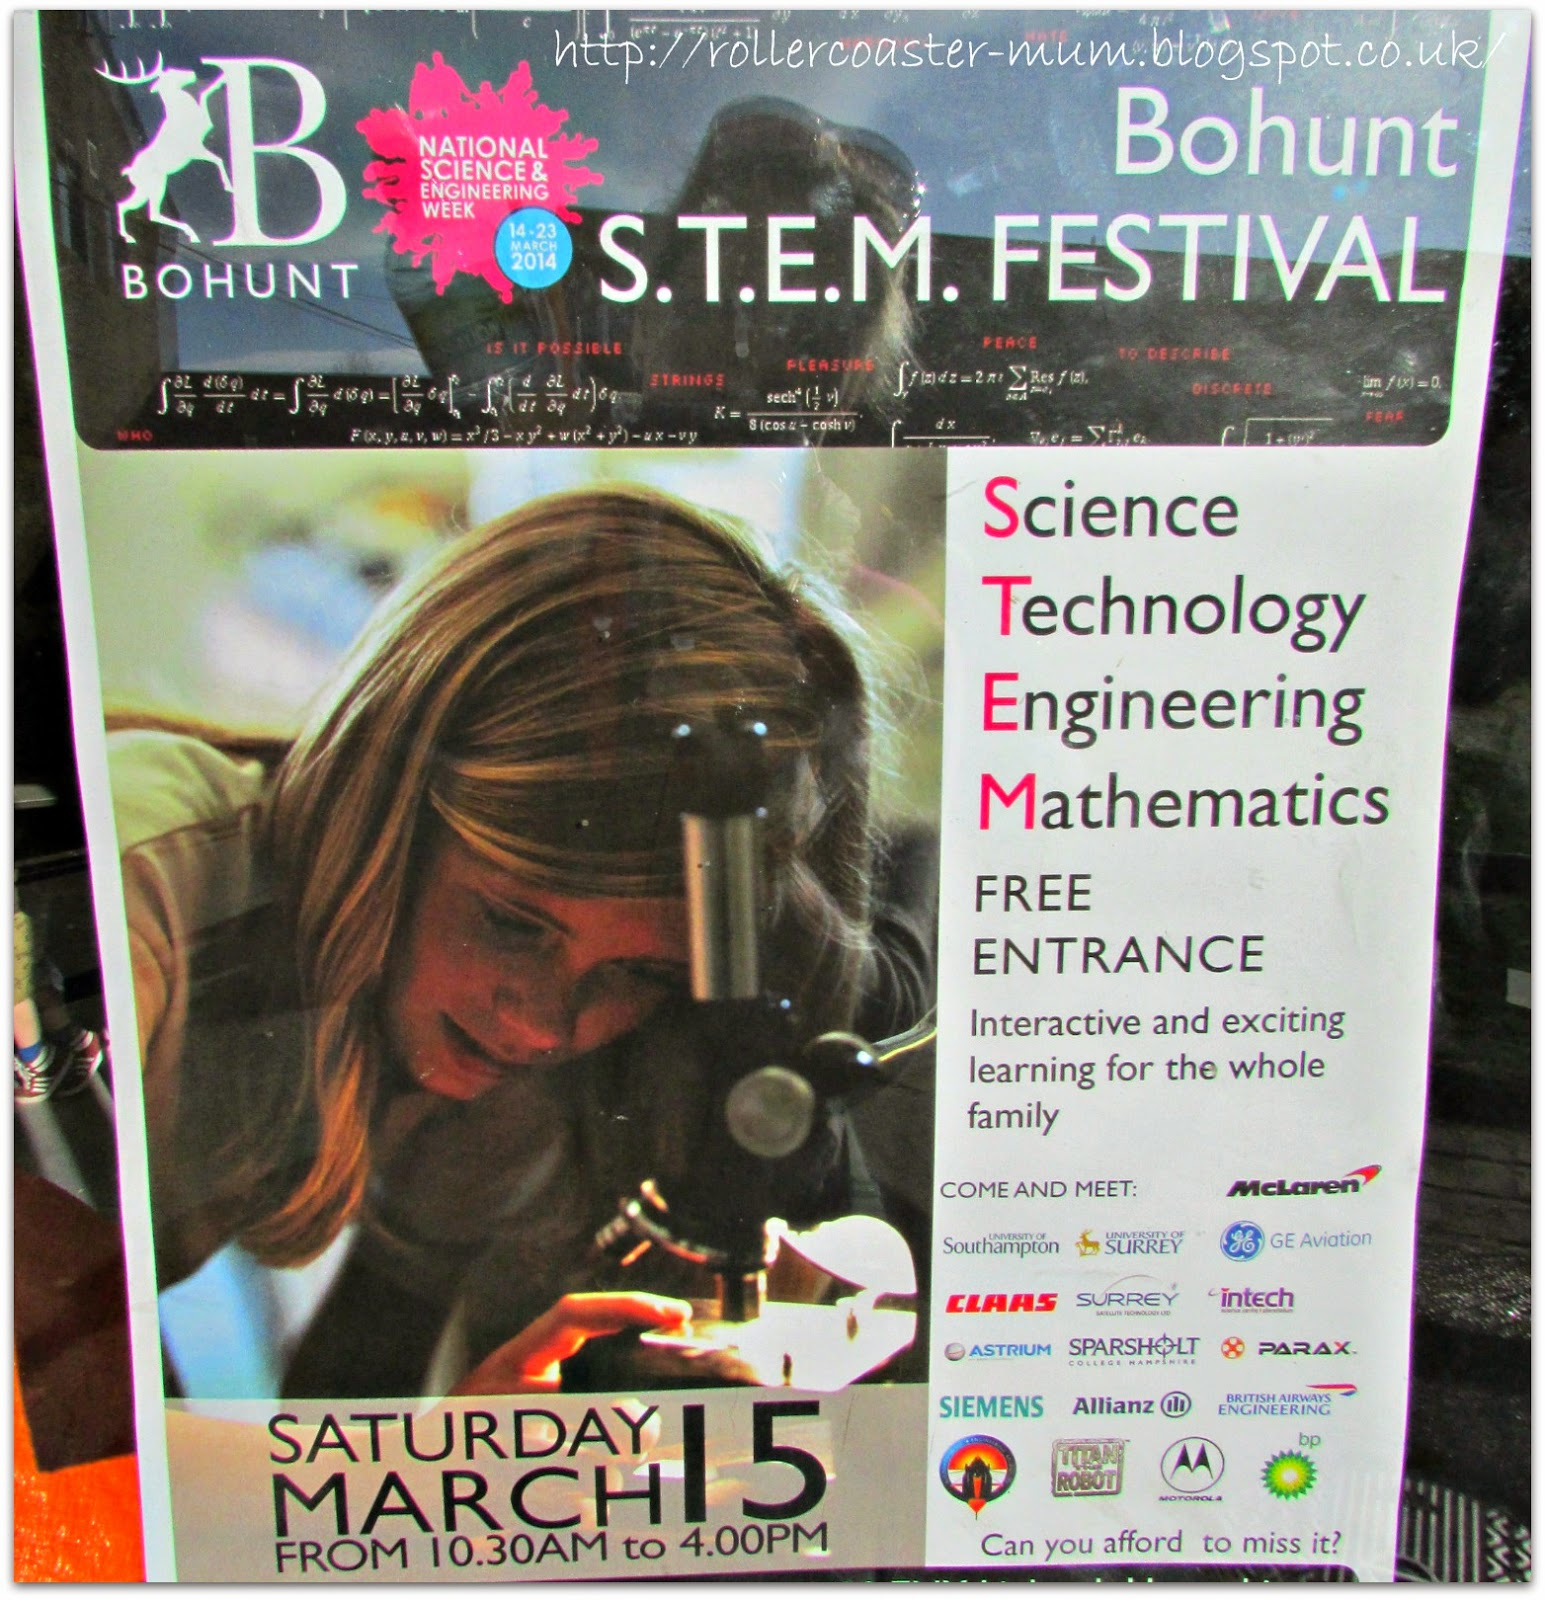 Bohunt STEM Festival for National Science Engineering Week 2014